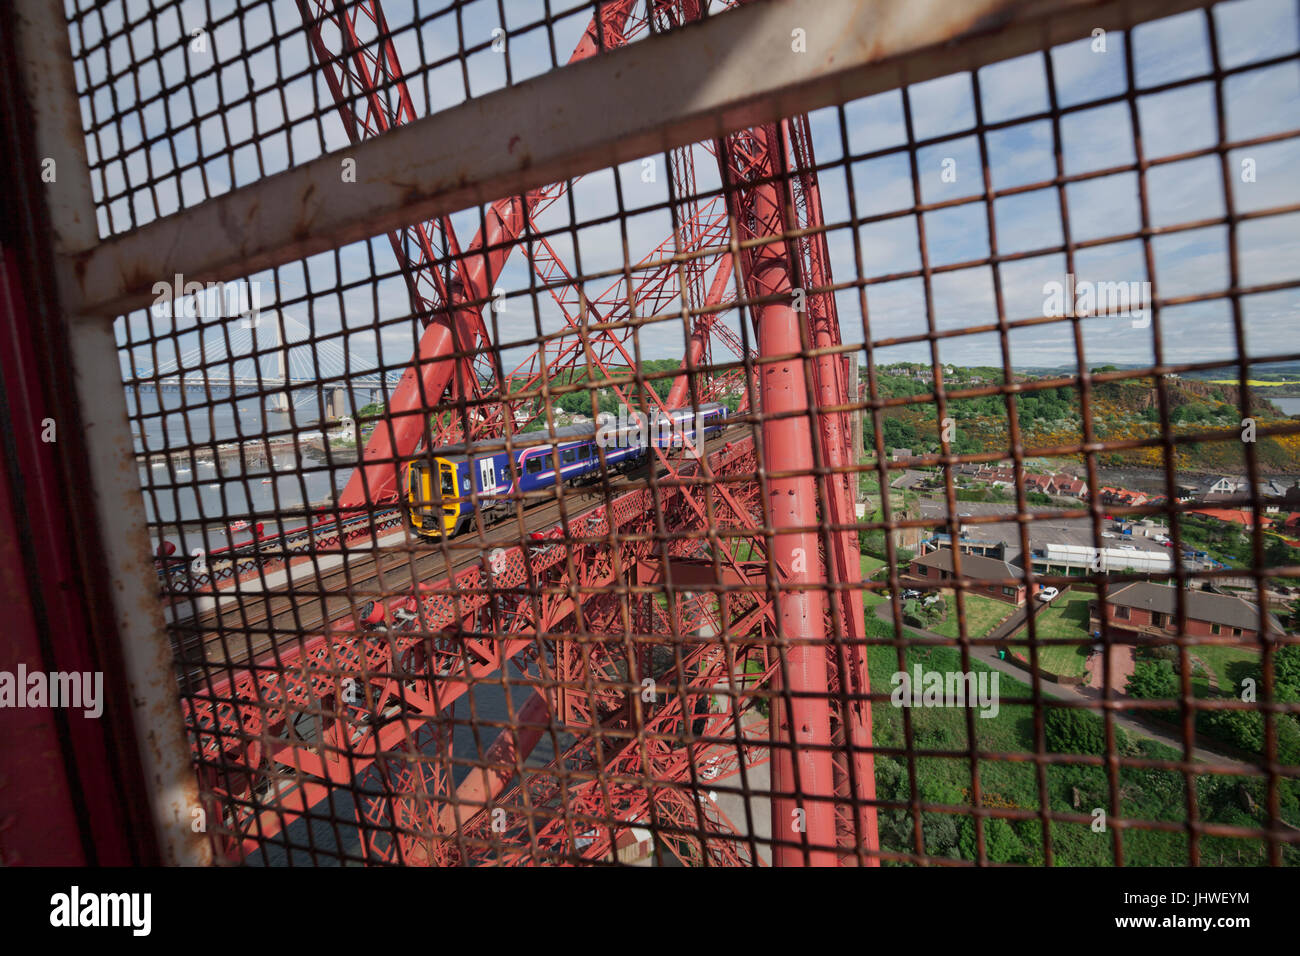 The Forth Bridge (Fife) the 0934 Edinburgh - Perth  crosses, view from the lift heading to the top of the north - Stock Image